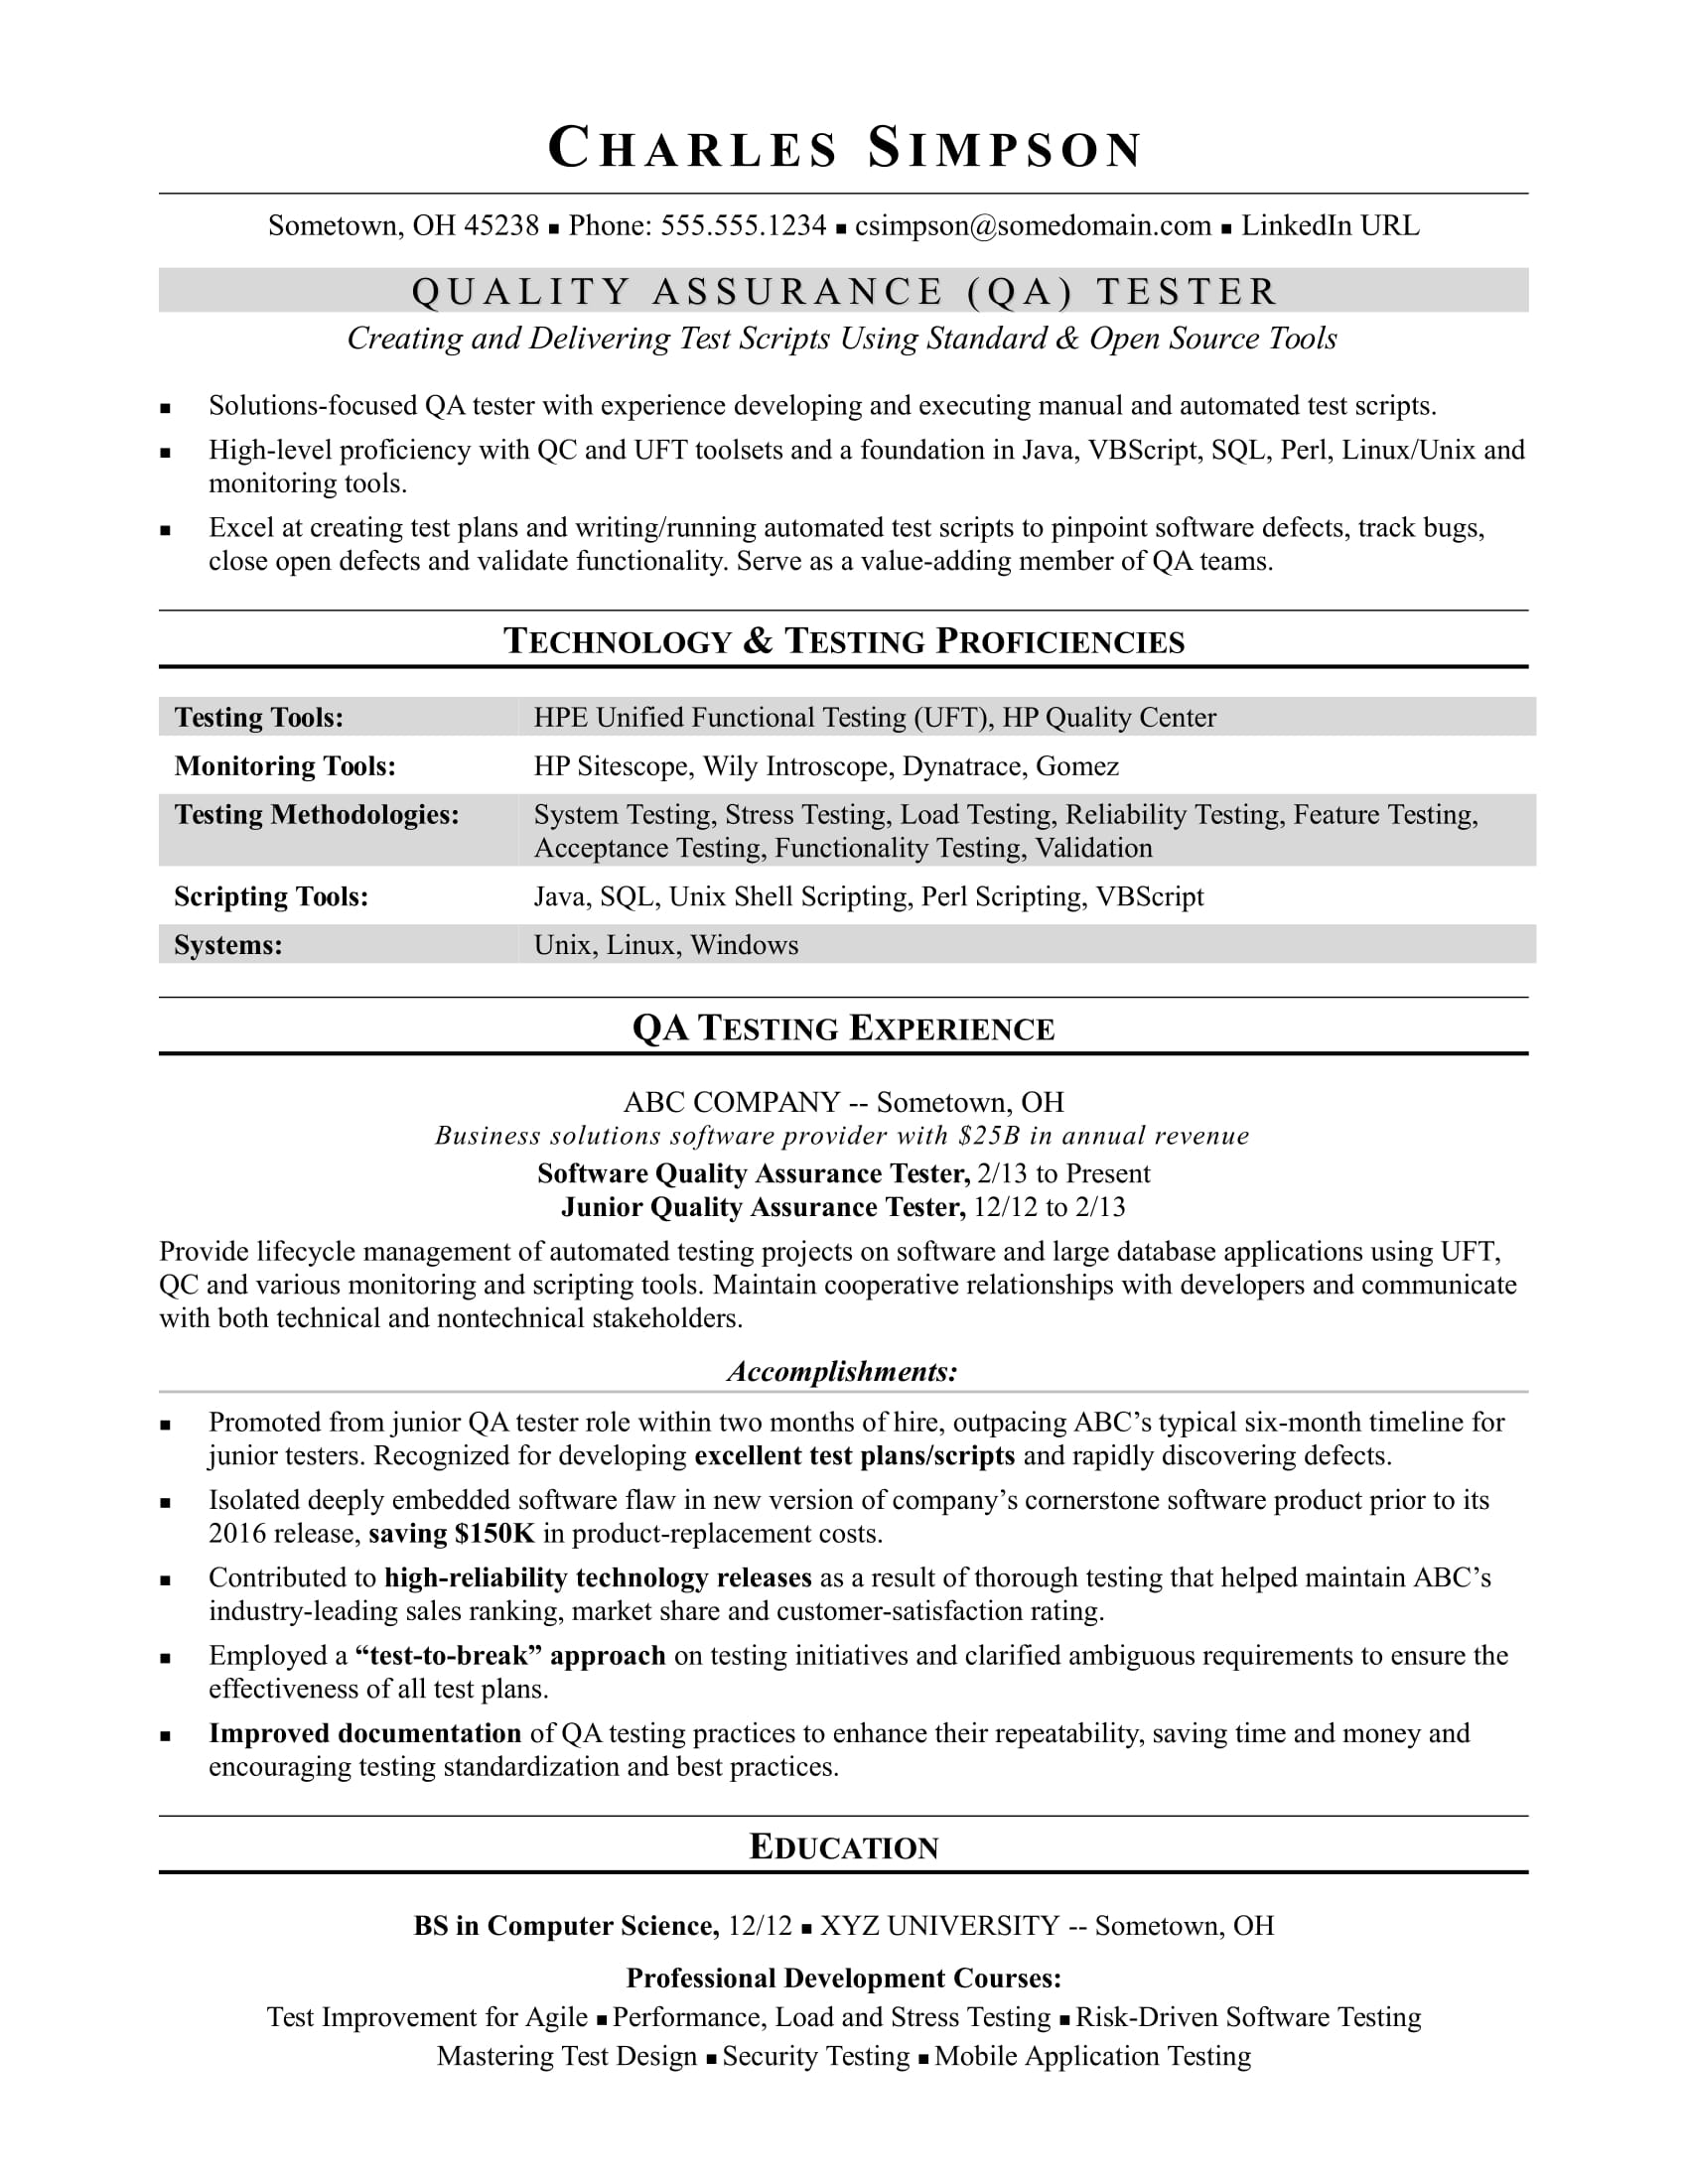 sample resume for a midlevel qa software tester - Software Tester Resume